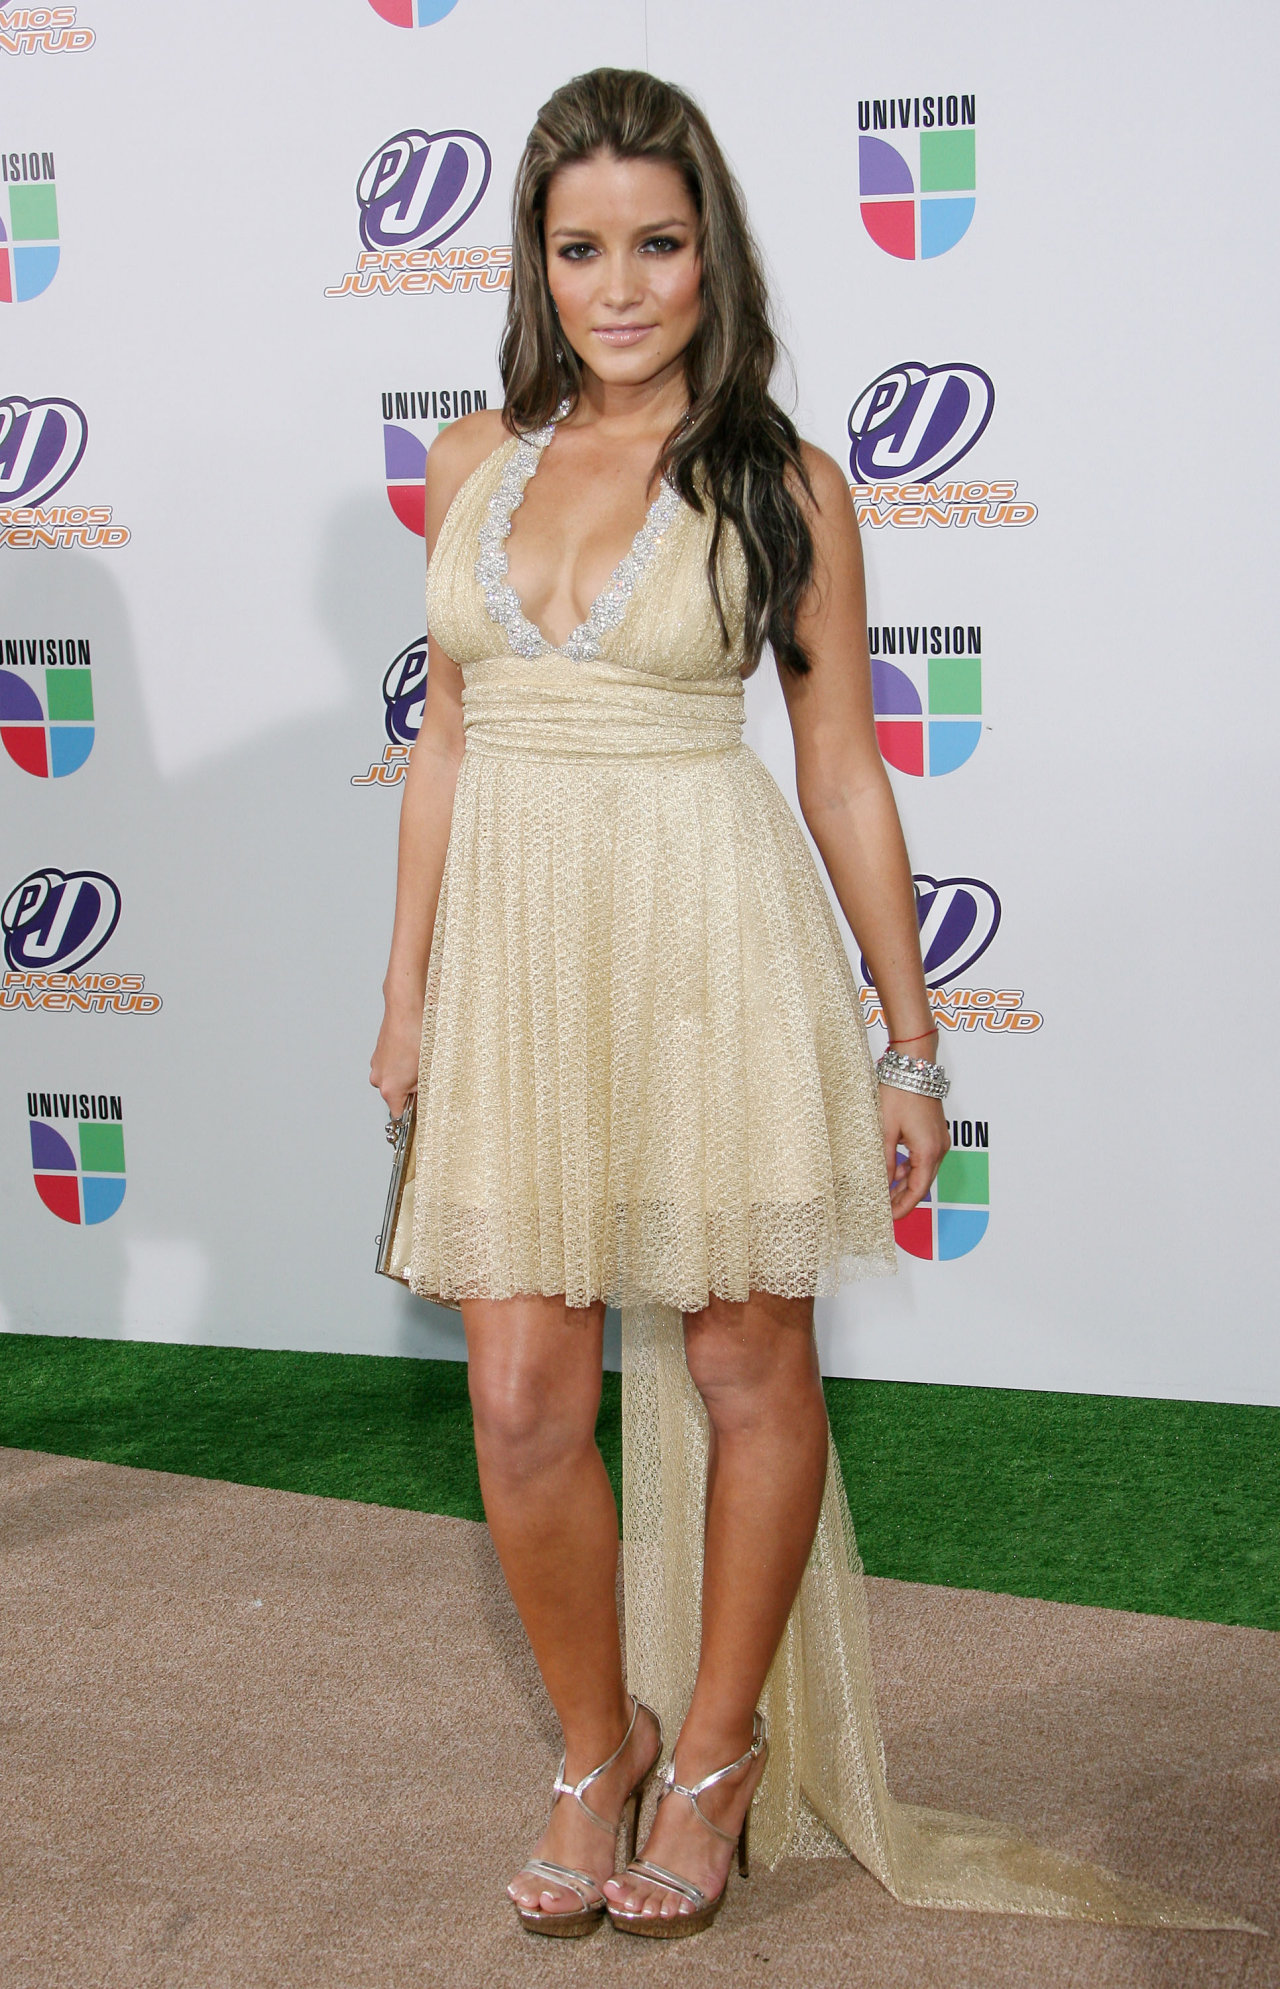 Adriana Fonseca wallpapers (99). Best Adriana Fonseca pictures